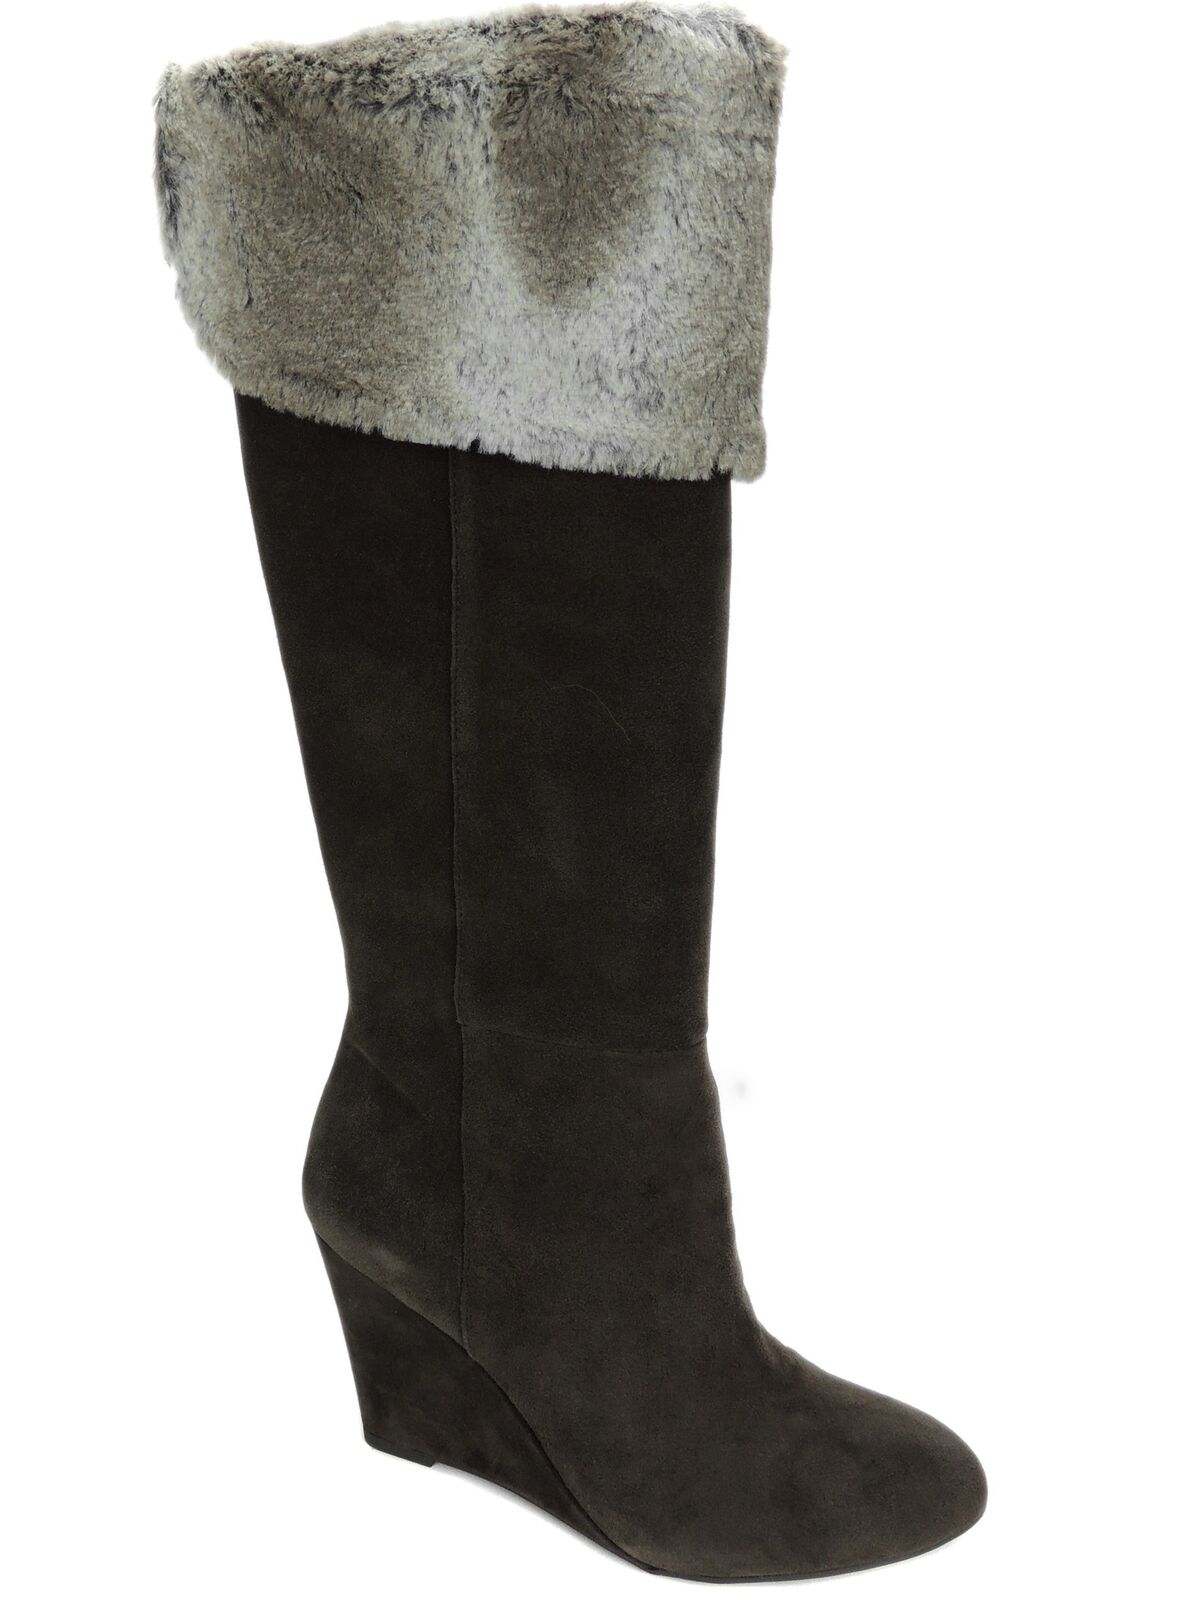 BCBGeneration Women's Mocha Calf Boots Onyx Brown Oily Suede Size 8 M